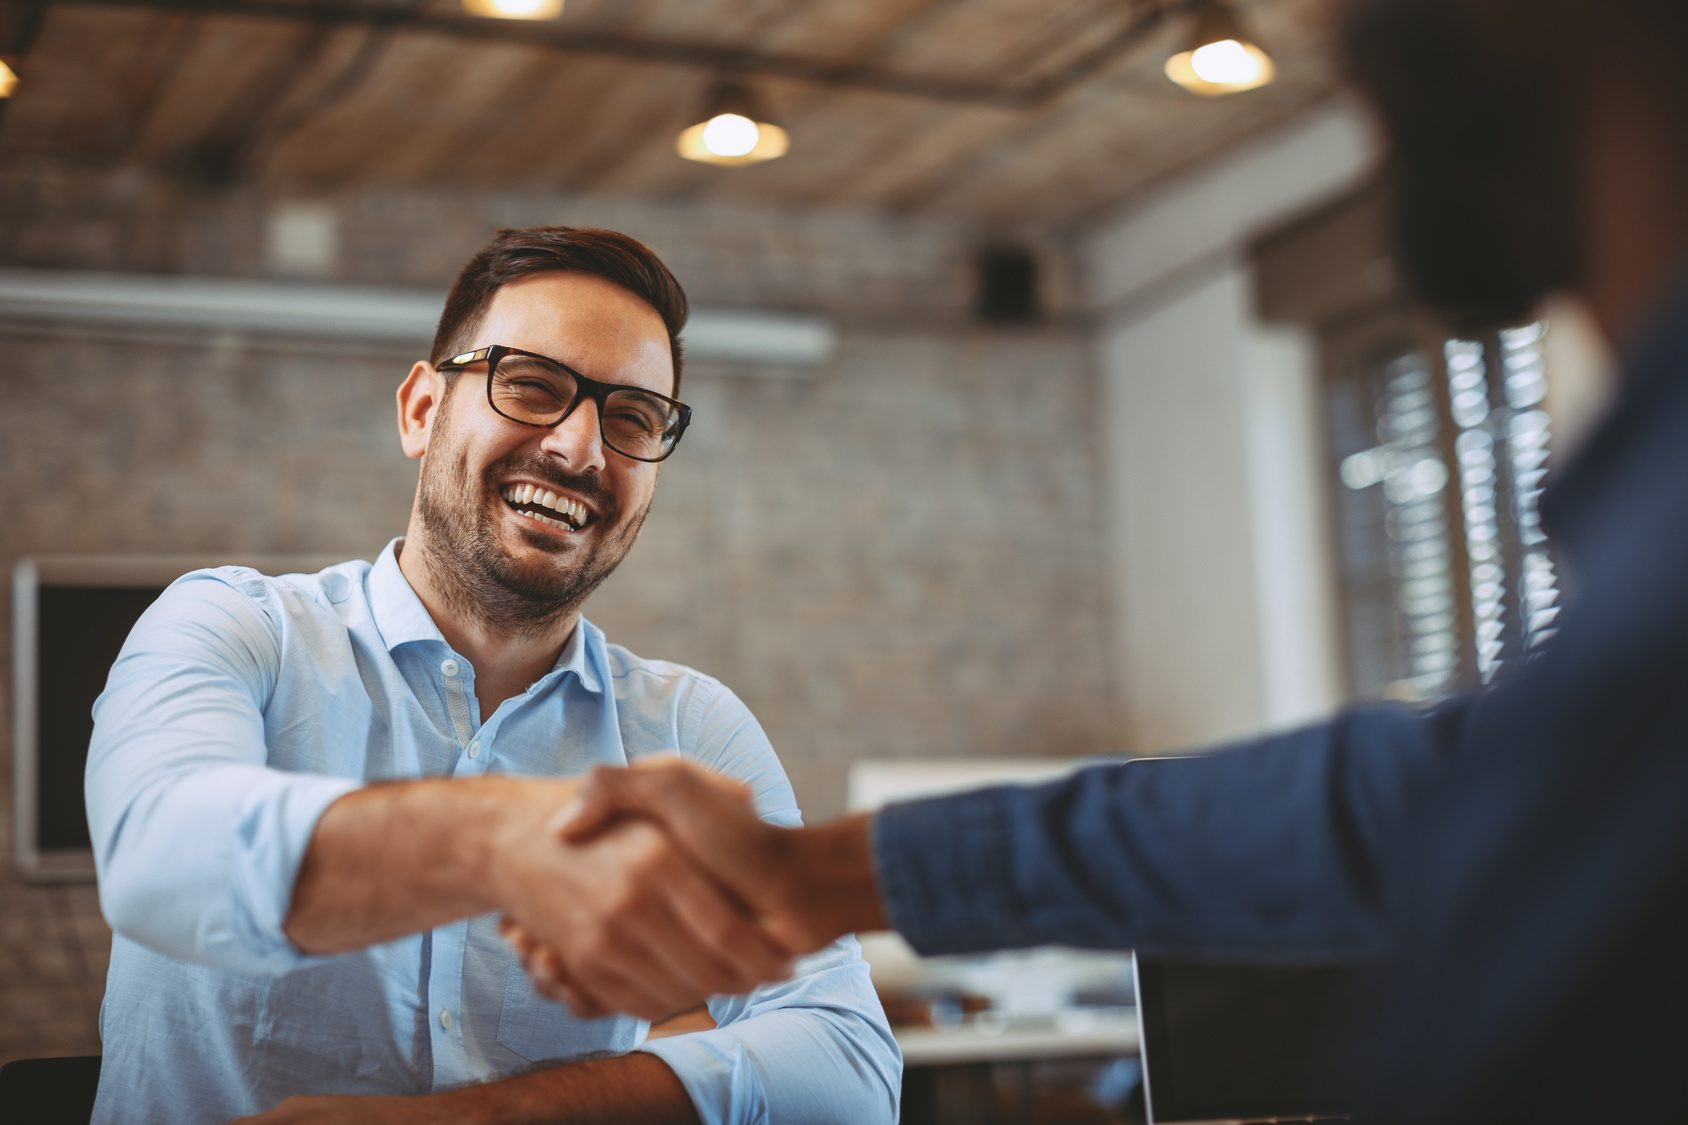 Man shaking hands with organisations stakeholder after discussing HR initiative